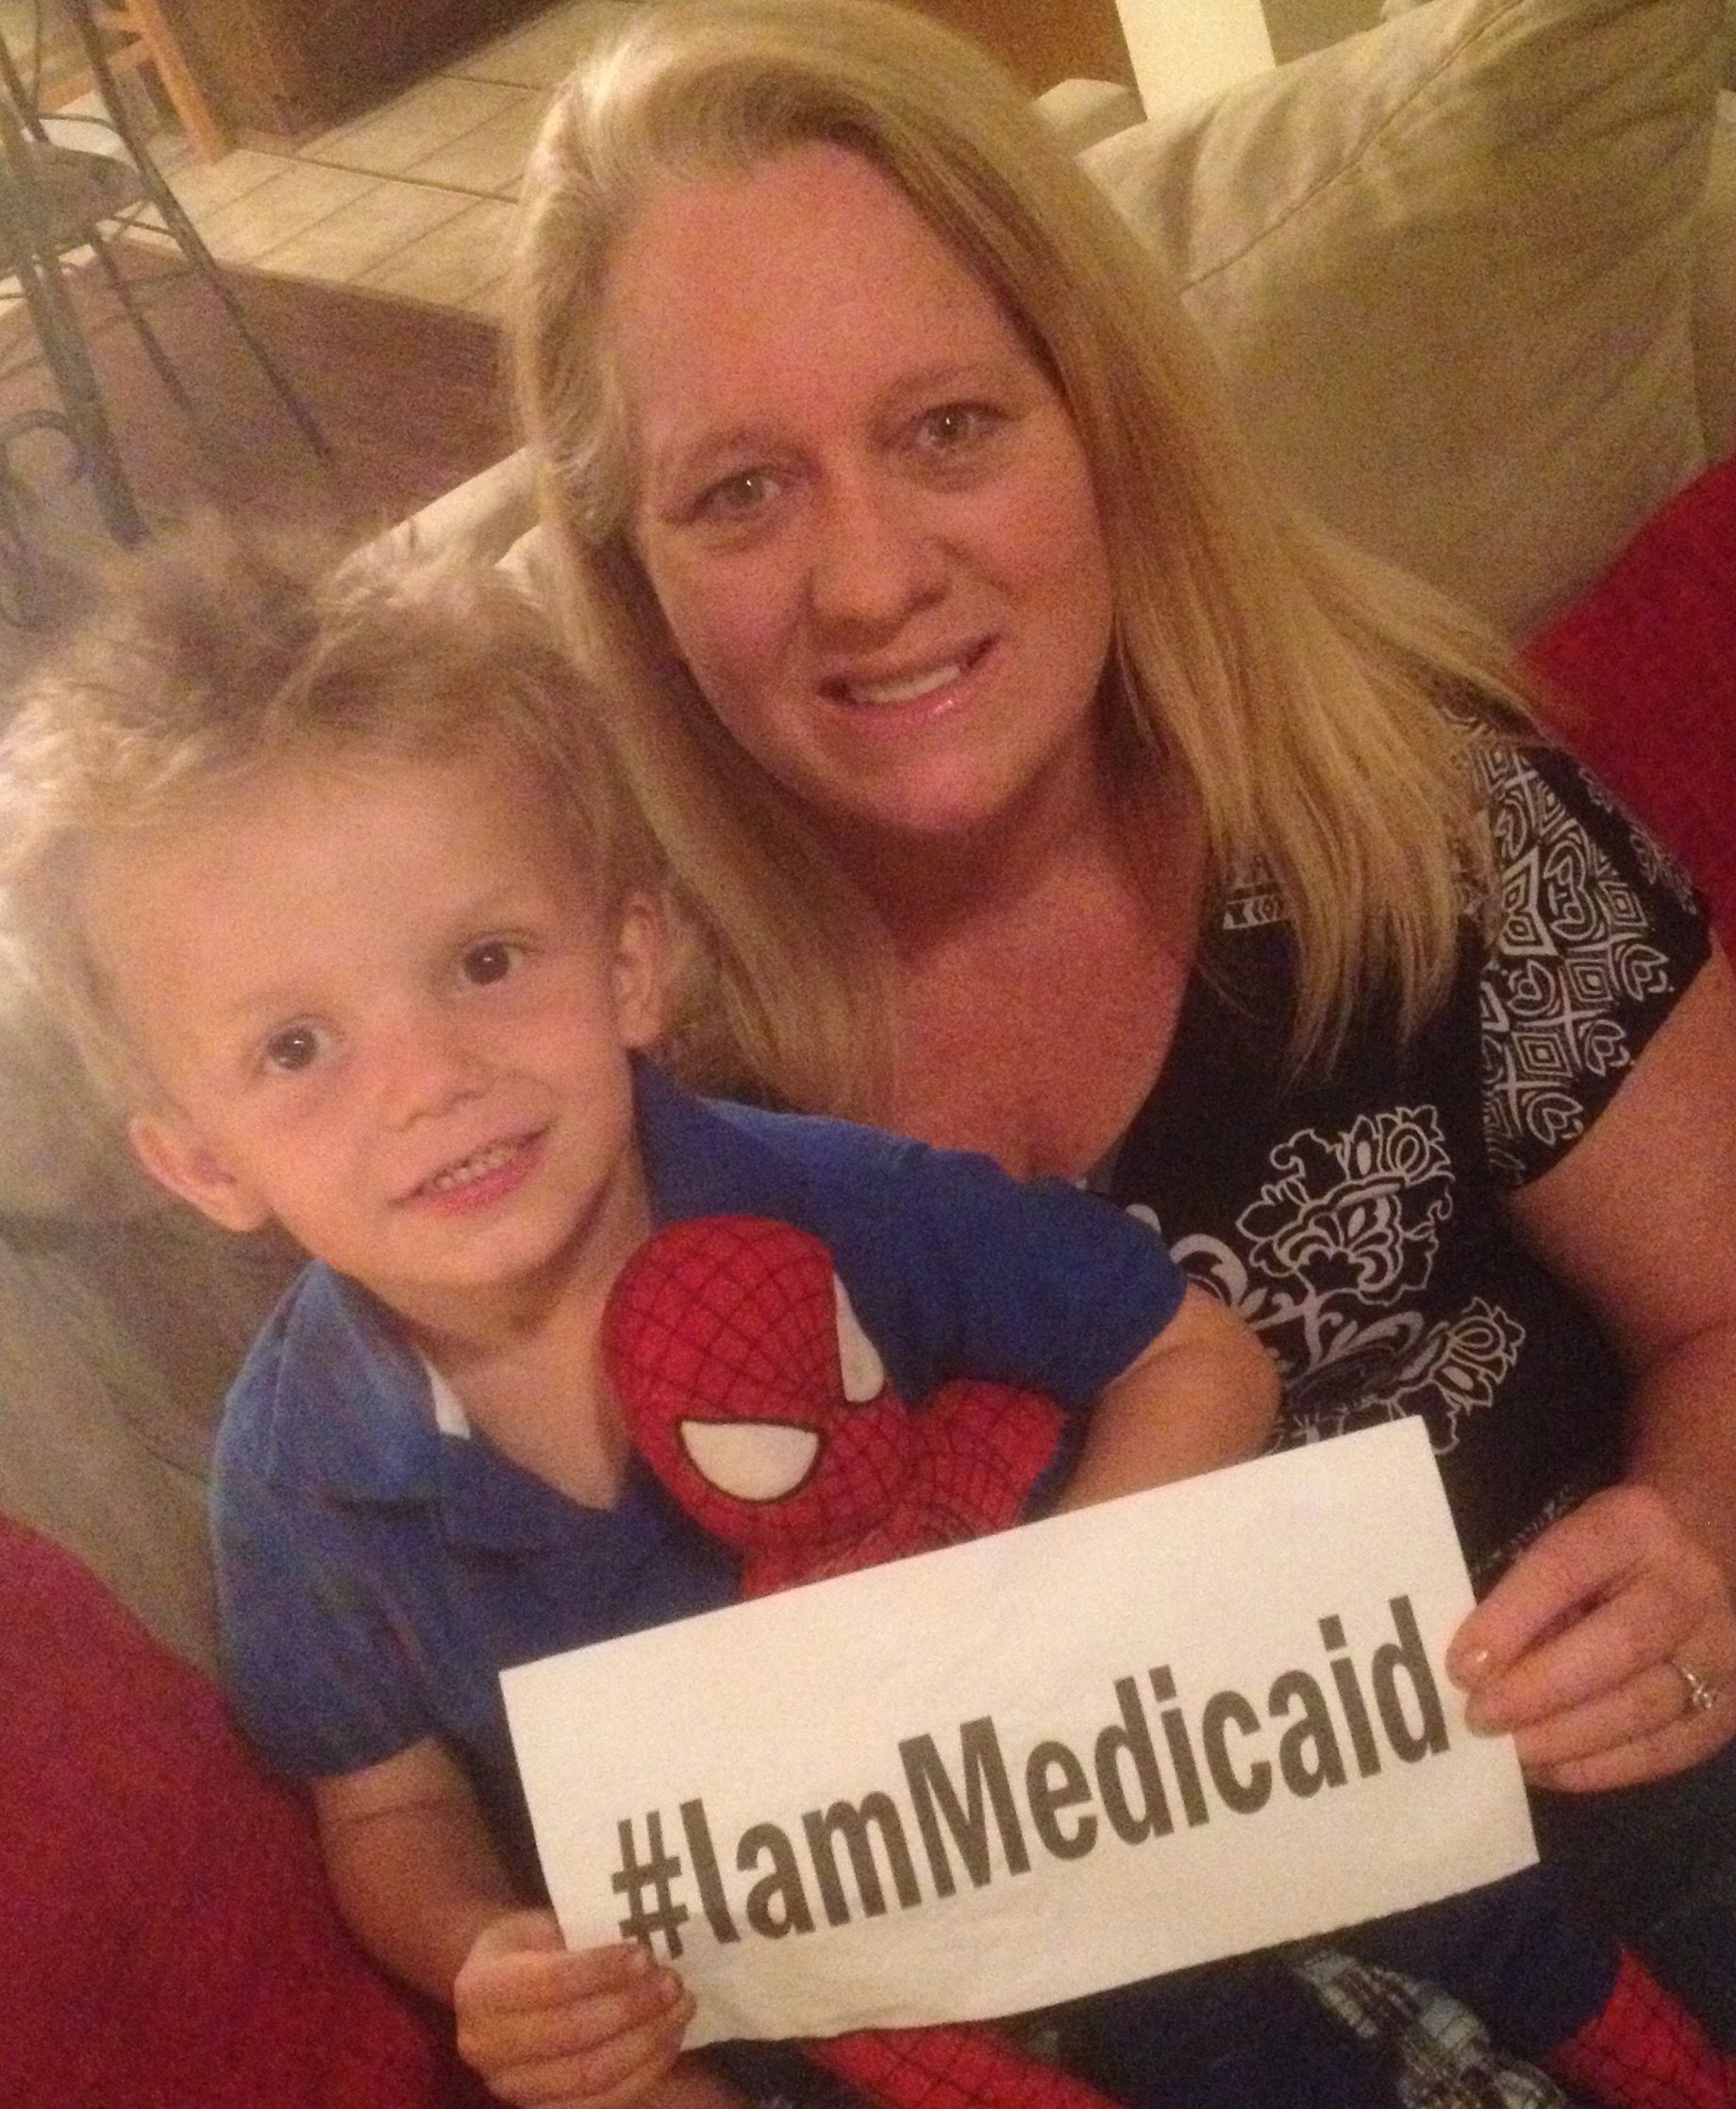 I have legal custody of an amazing 3 year old boy; however, as a legal guardian my Blue Cross/Blue Shield will not cover him. Medicaid is our only option. I don't know what I would do without it! #IamMedicaid